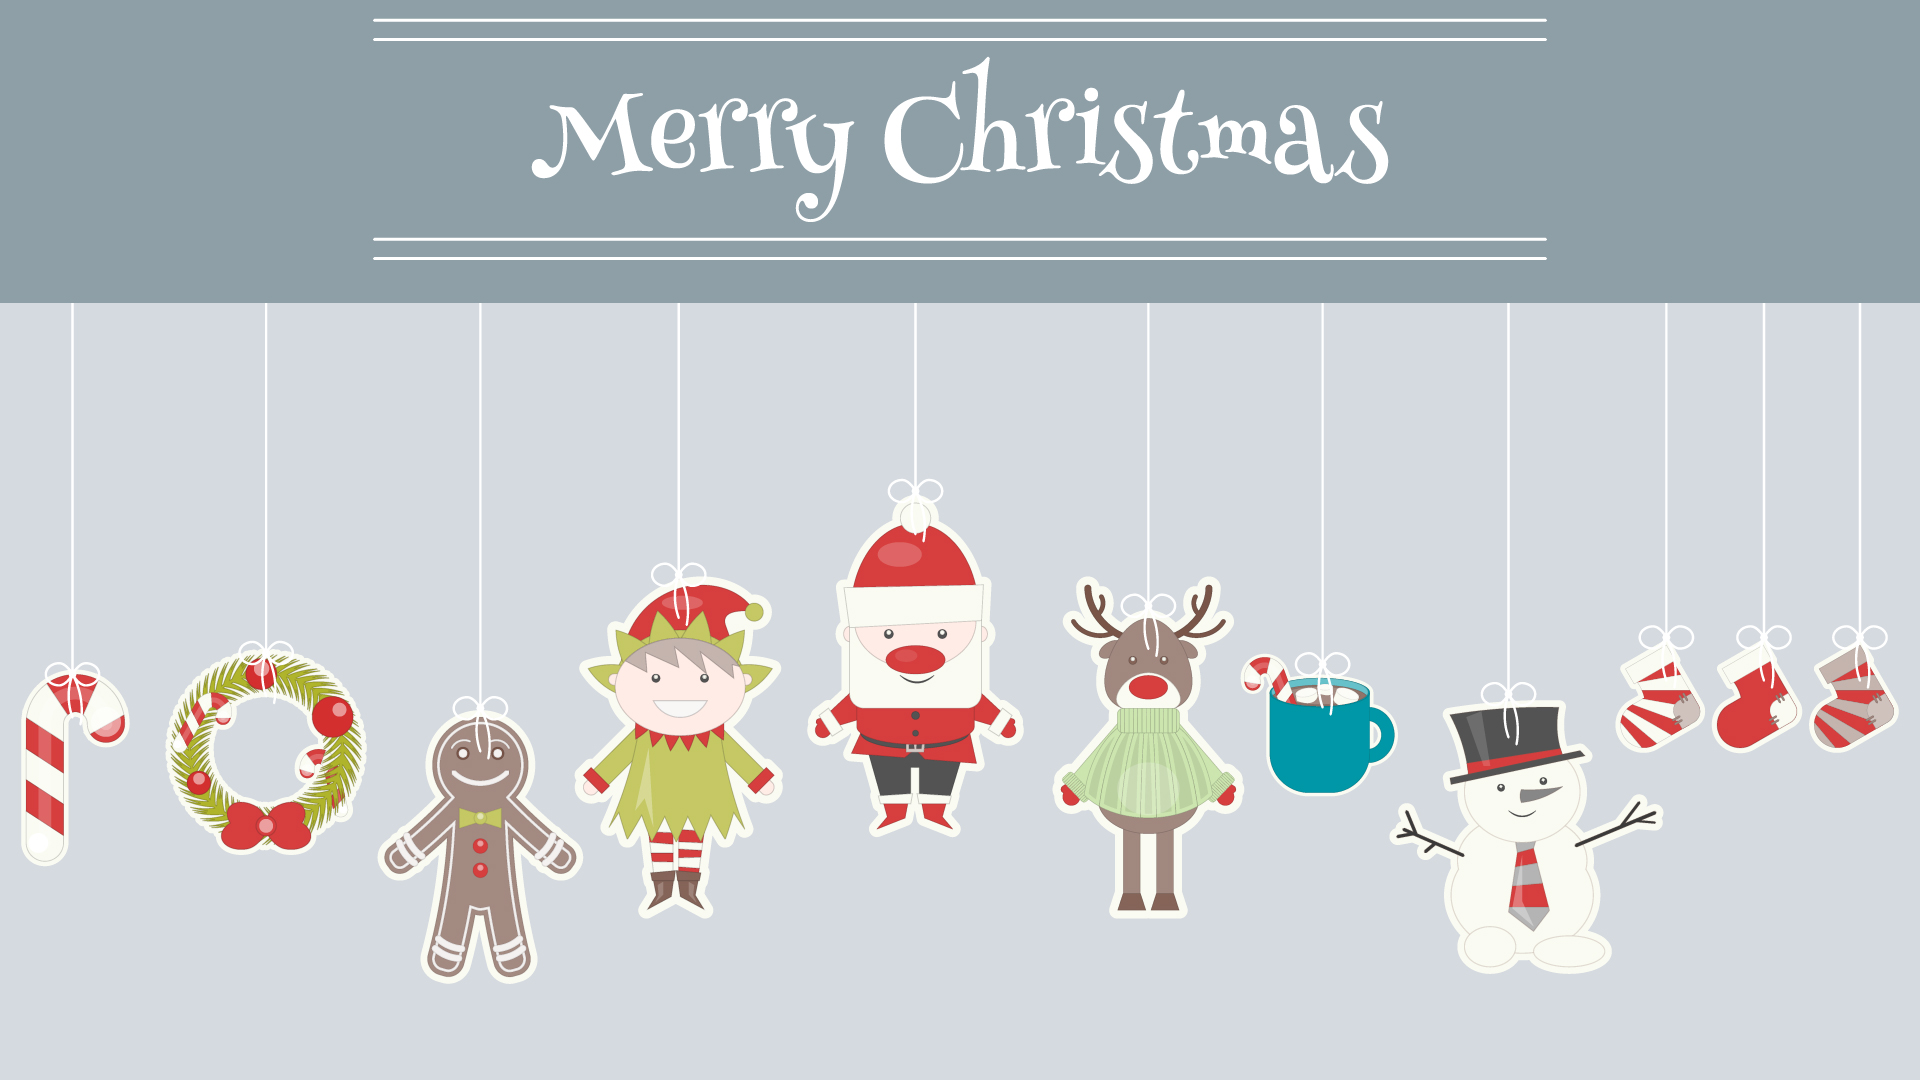 250 2505205 merry christmas wallpaper for laptop